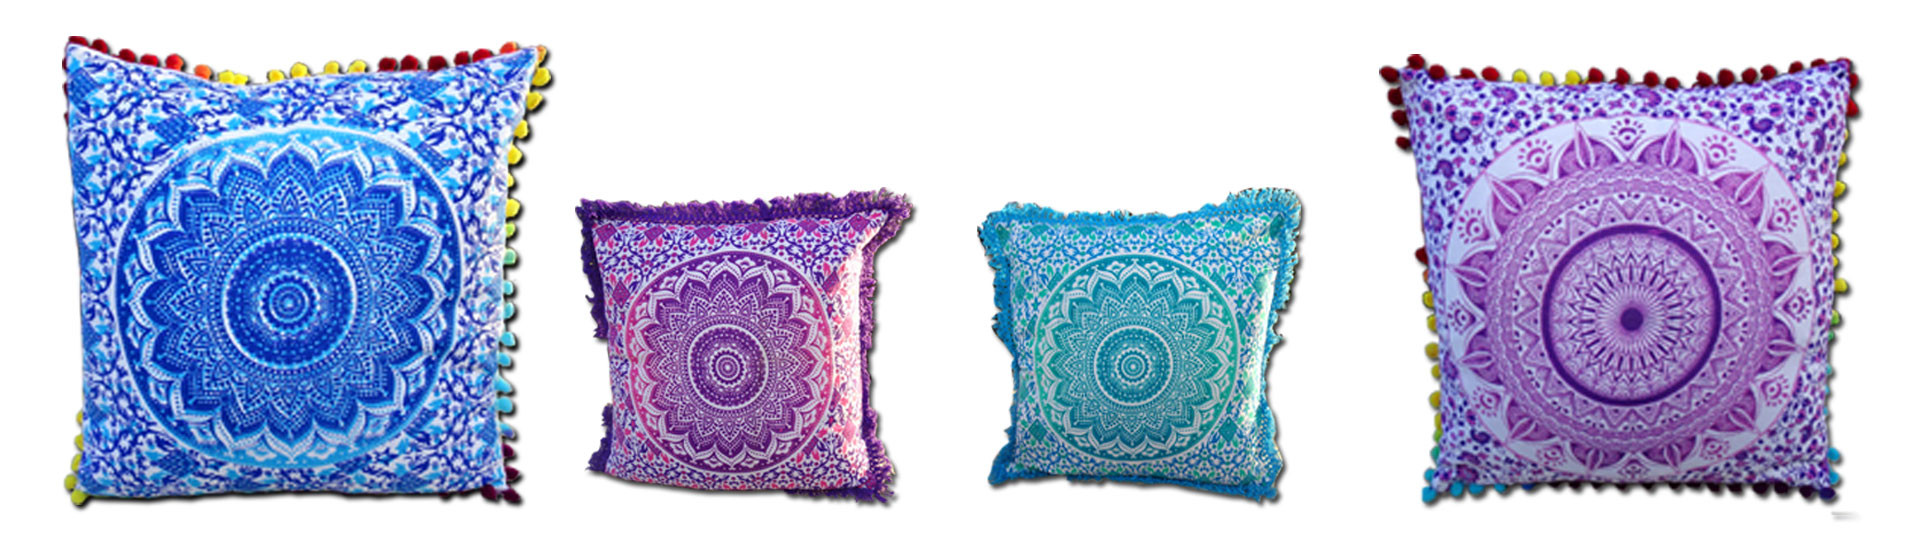 ponpons and fringes cushions